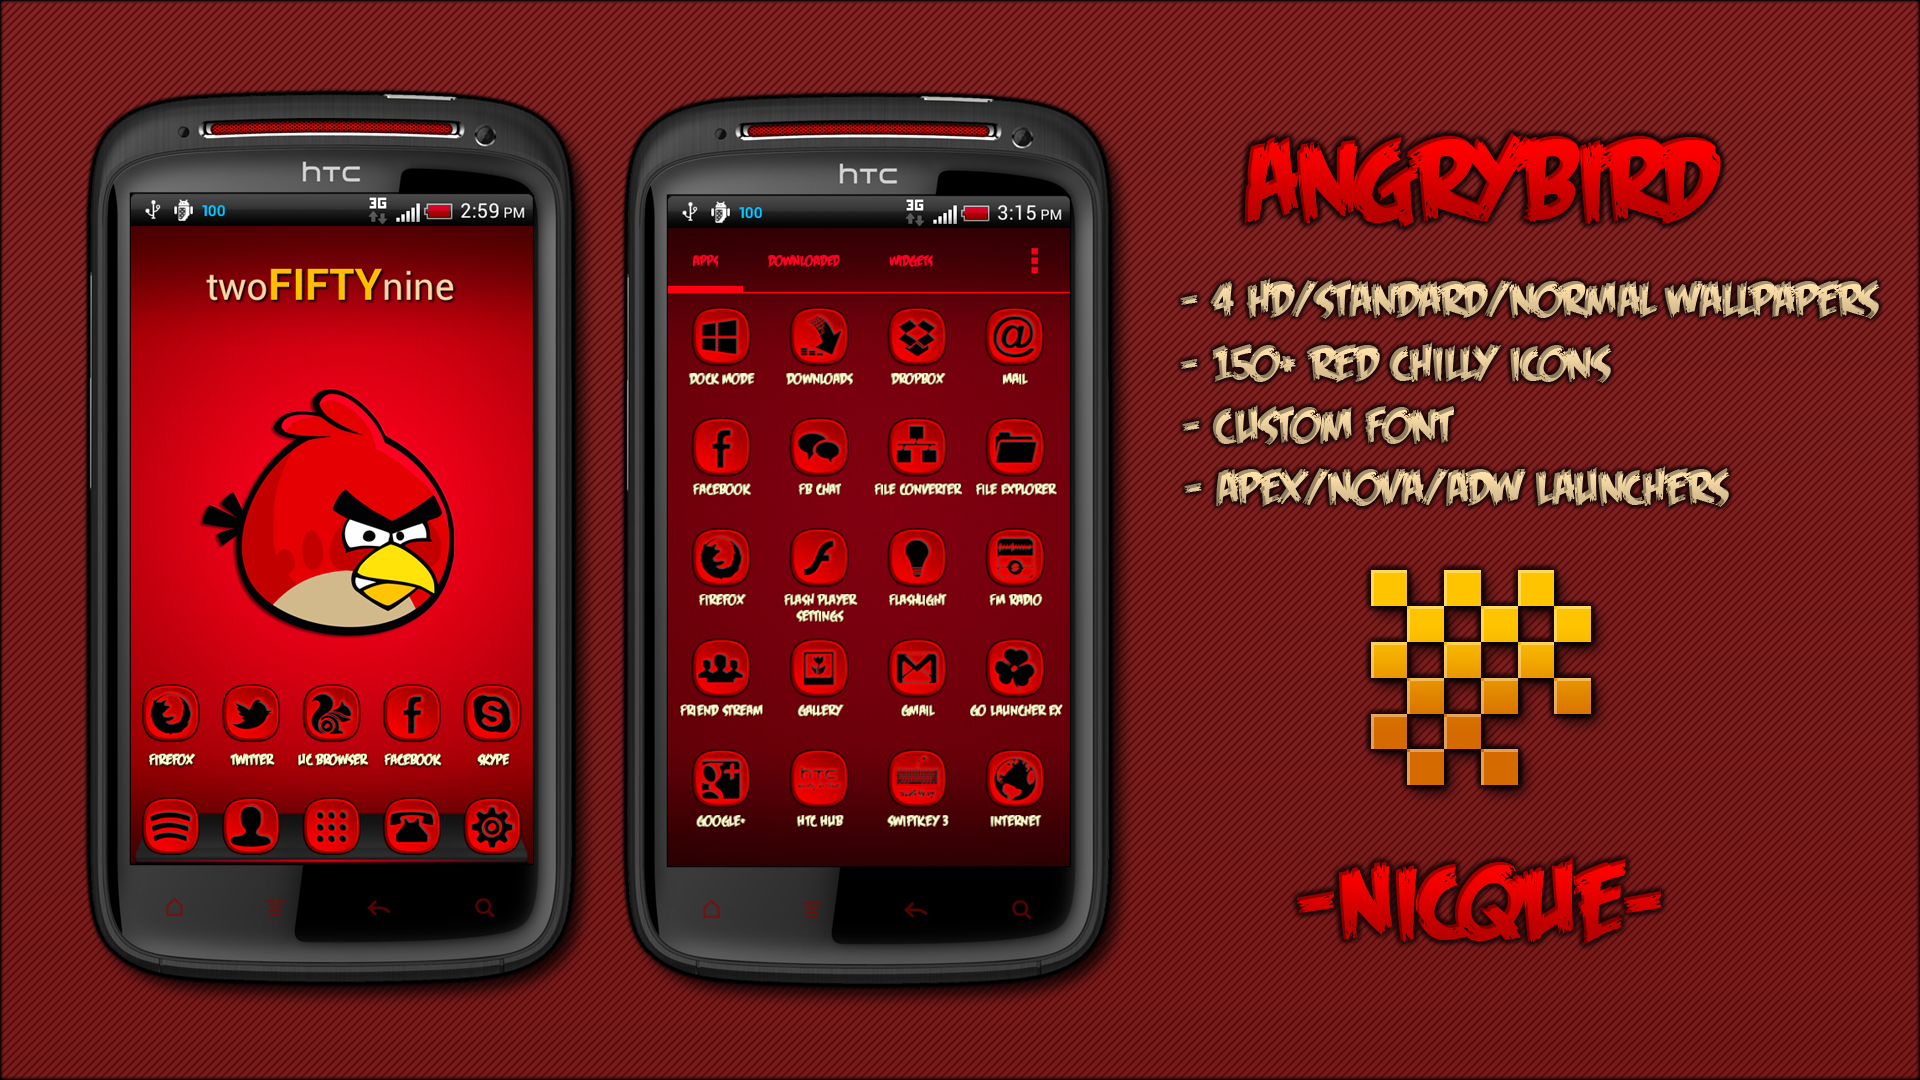 angry birds theme by navin rai for apex launcher on android comes with 4 hd wallpapers